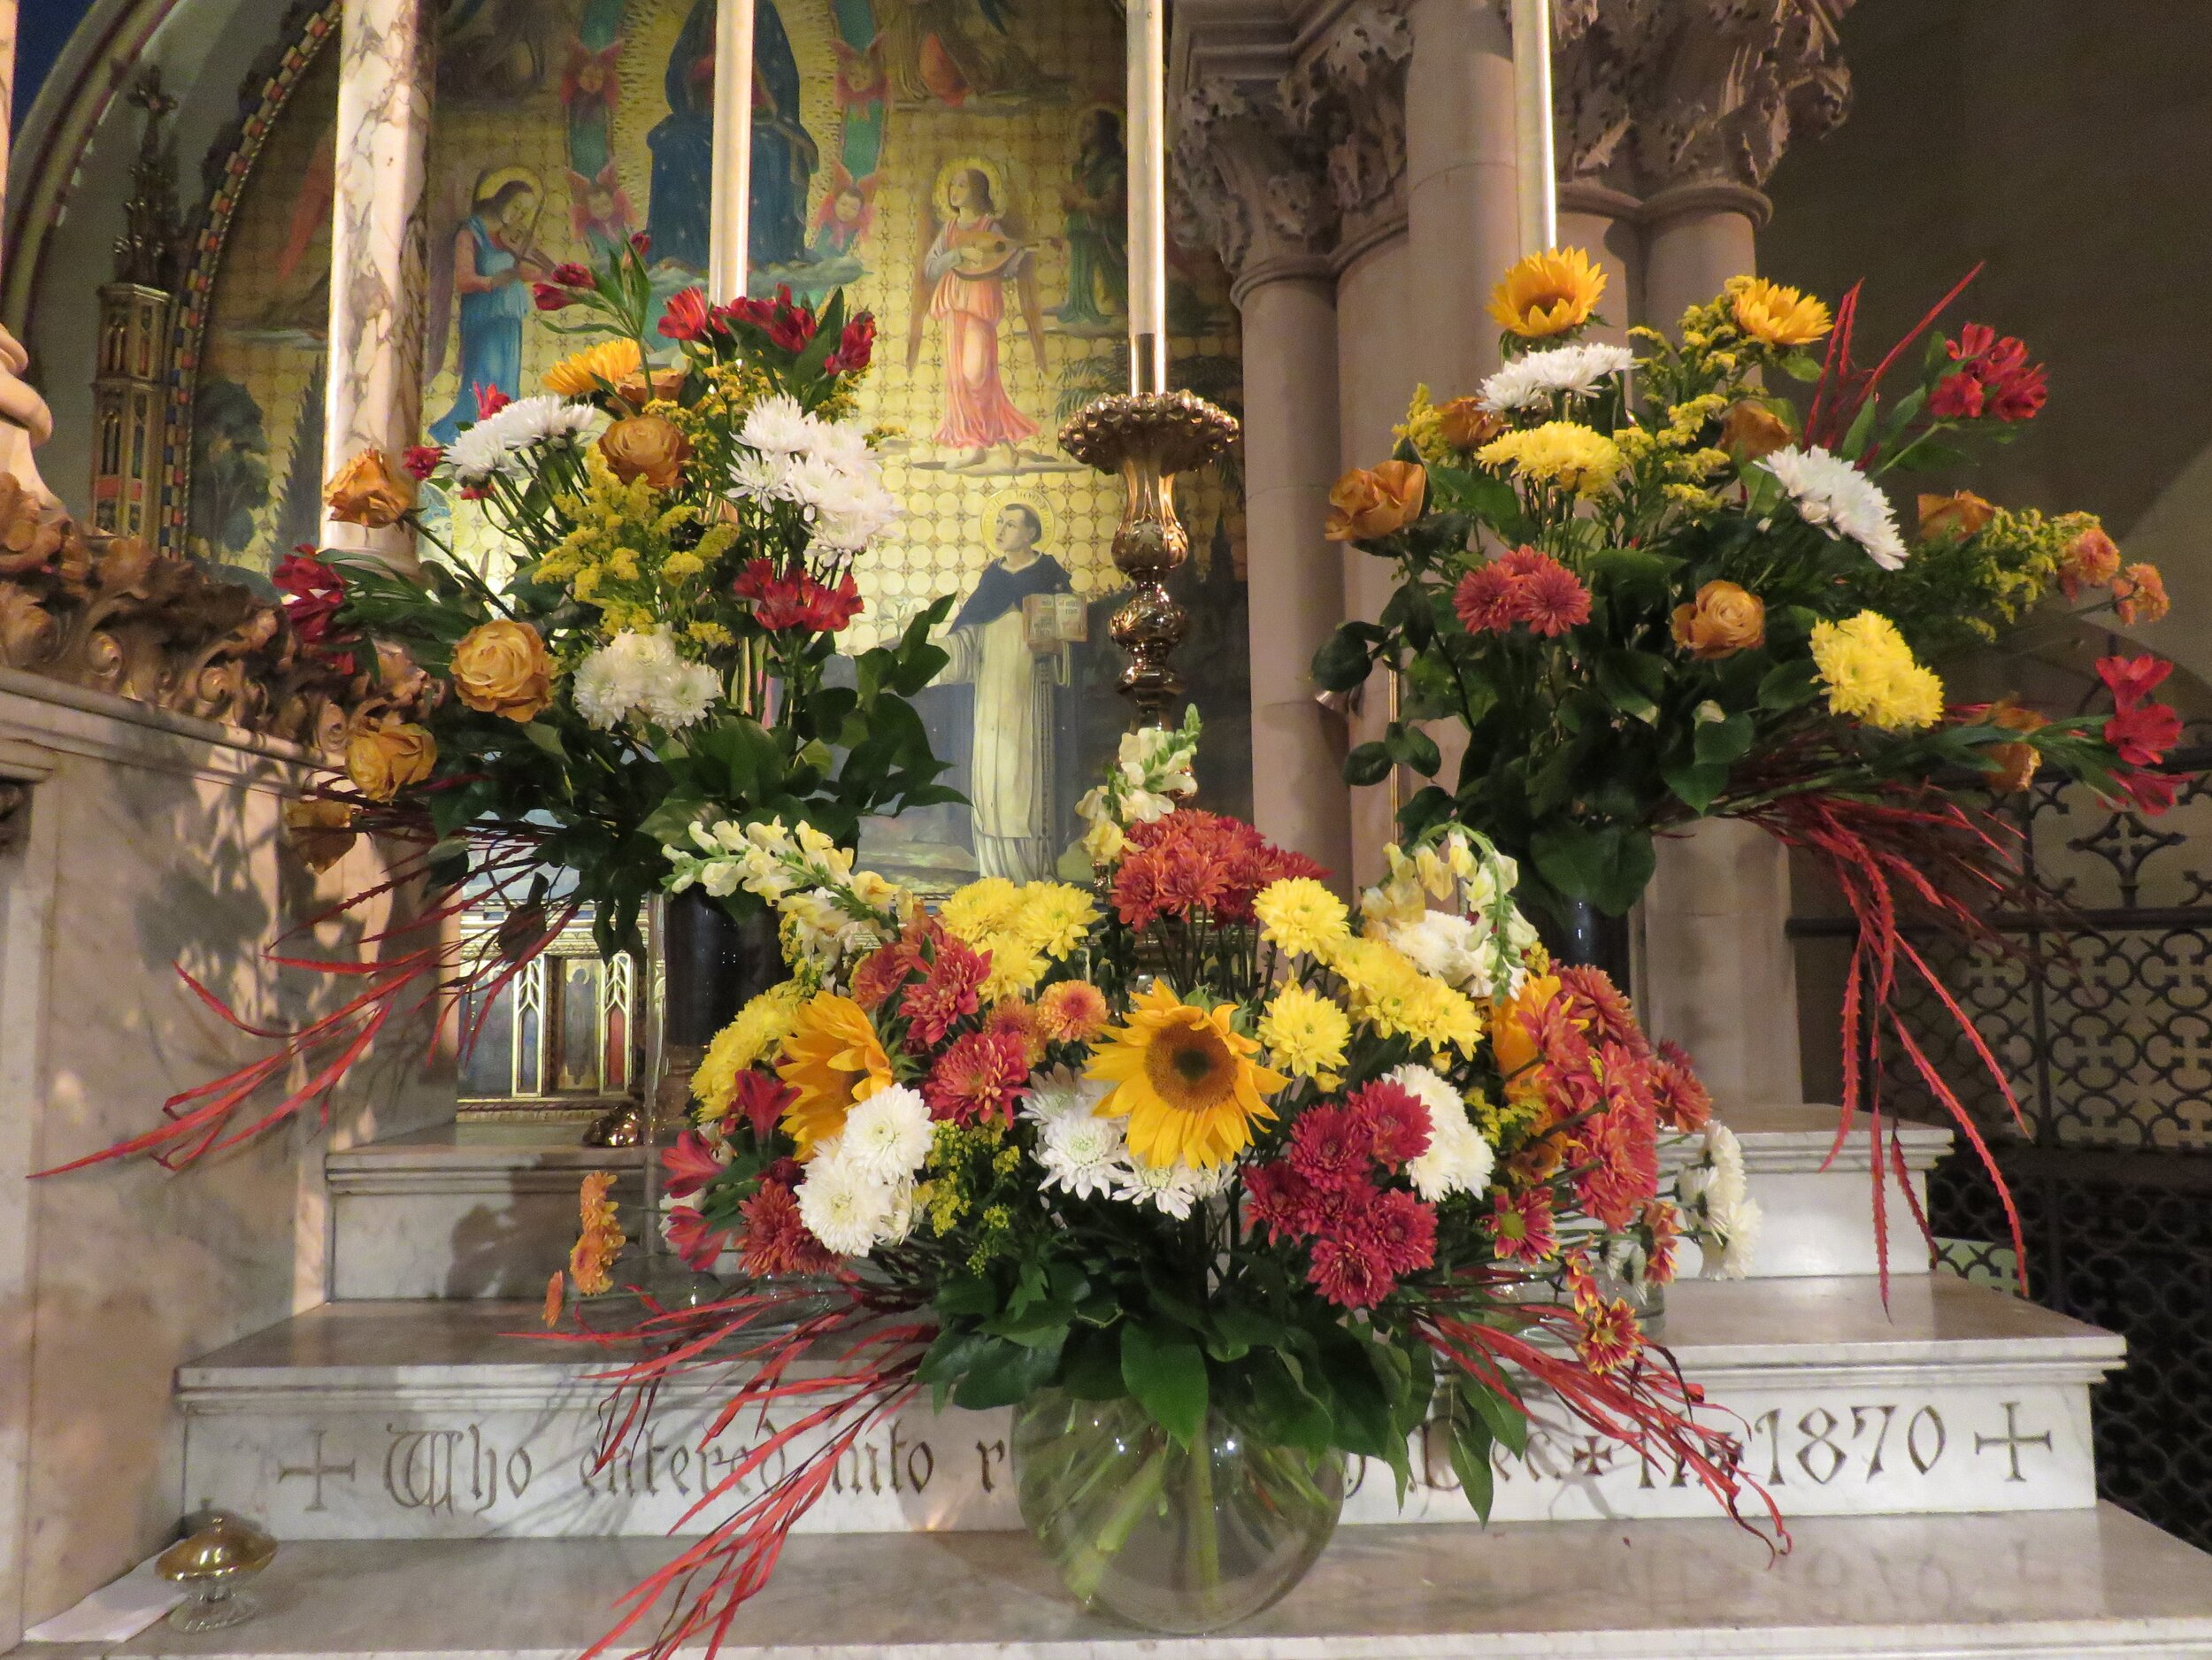 The flowers were given to the Glory of God and in thanksgiving for the ministry of the Society of Saint Francis by the members of the Third Order of the Society of Saint Francis.    Photo:  Damien Joseph SSF